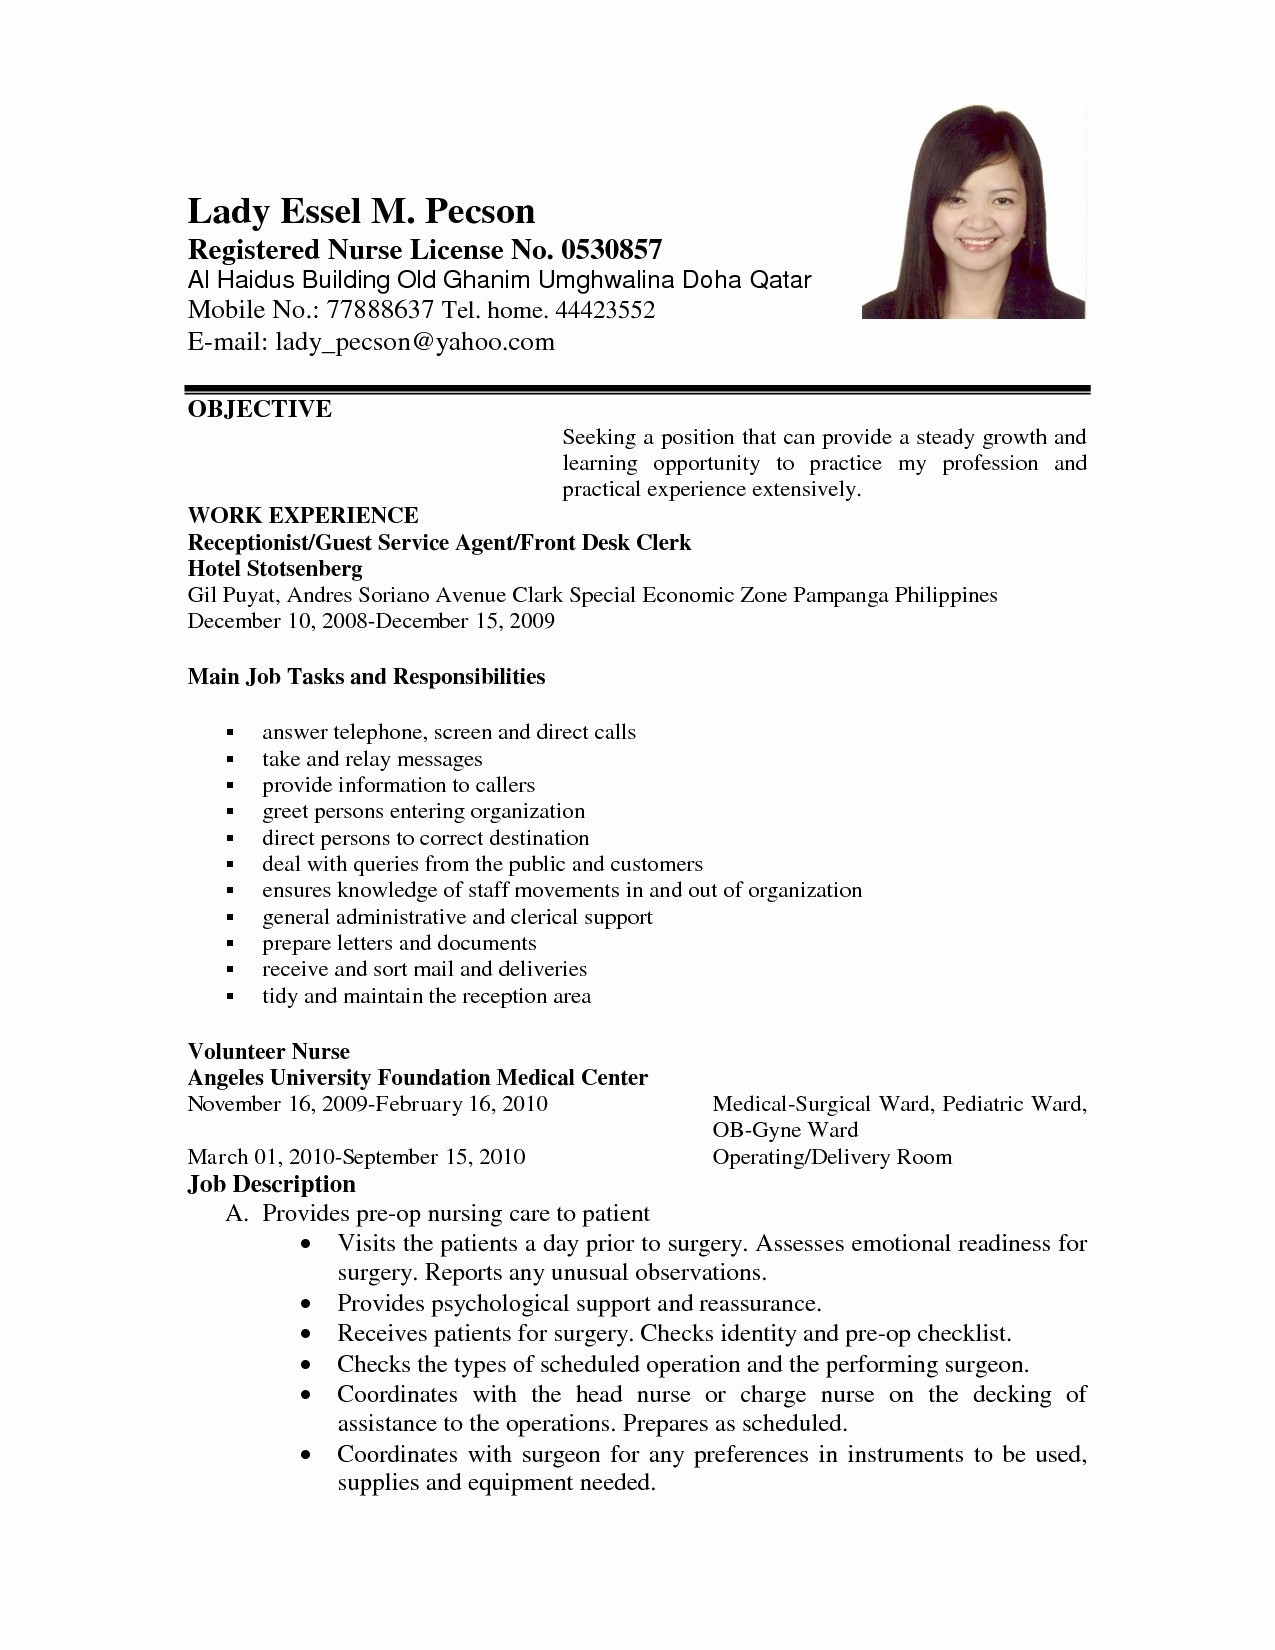 Child Actors Resume Template - Actors Resume Template Unique Child Actor Resume Template Awesome